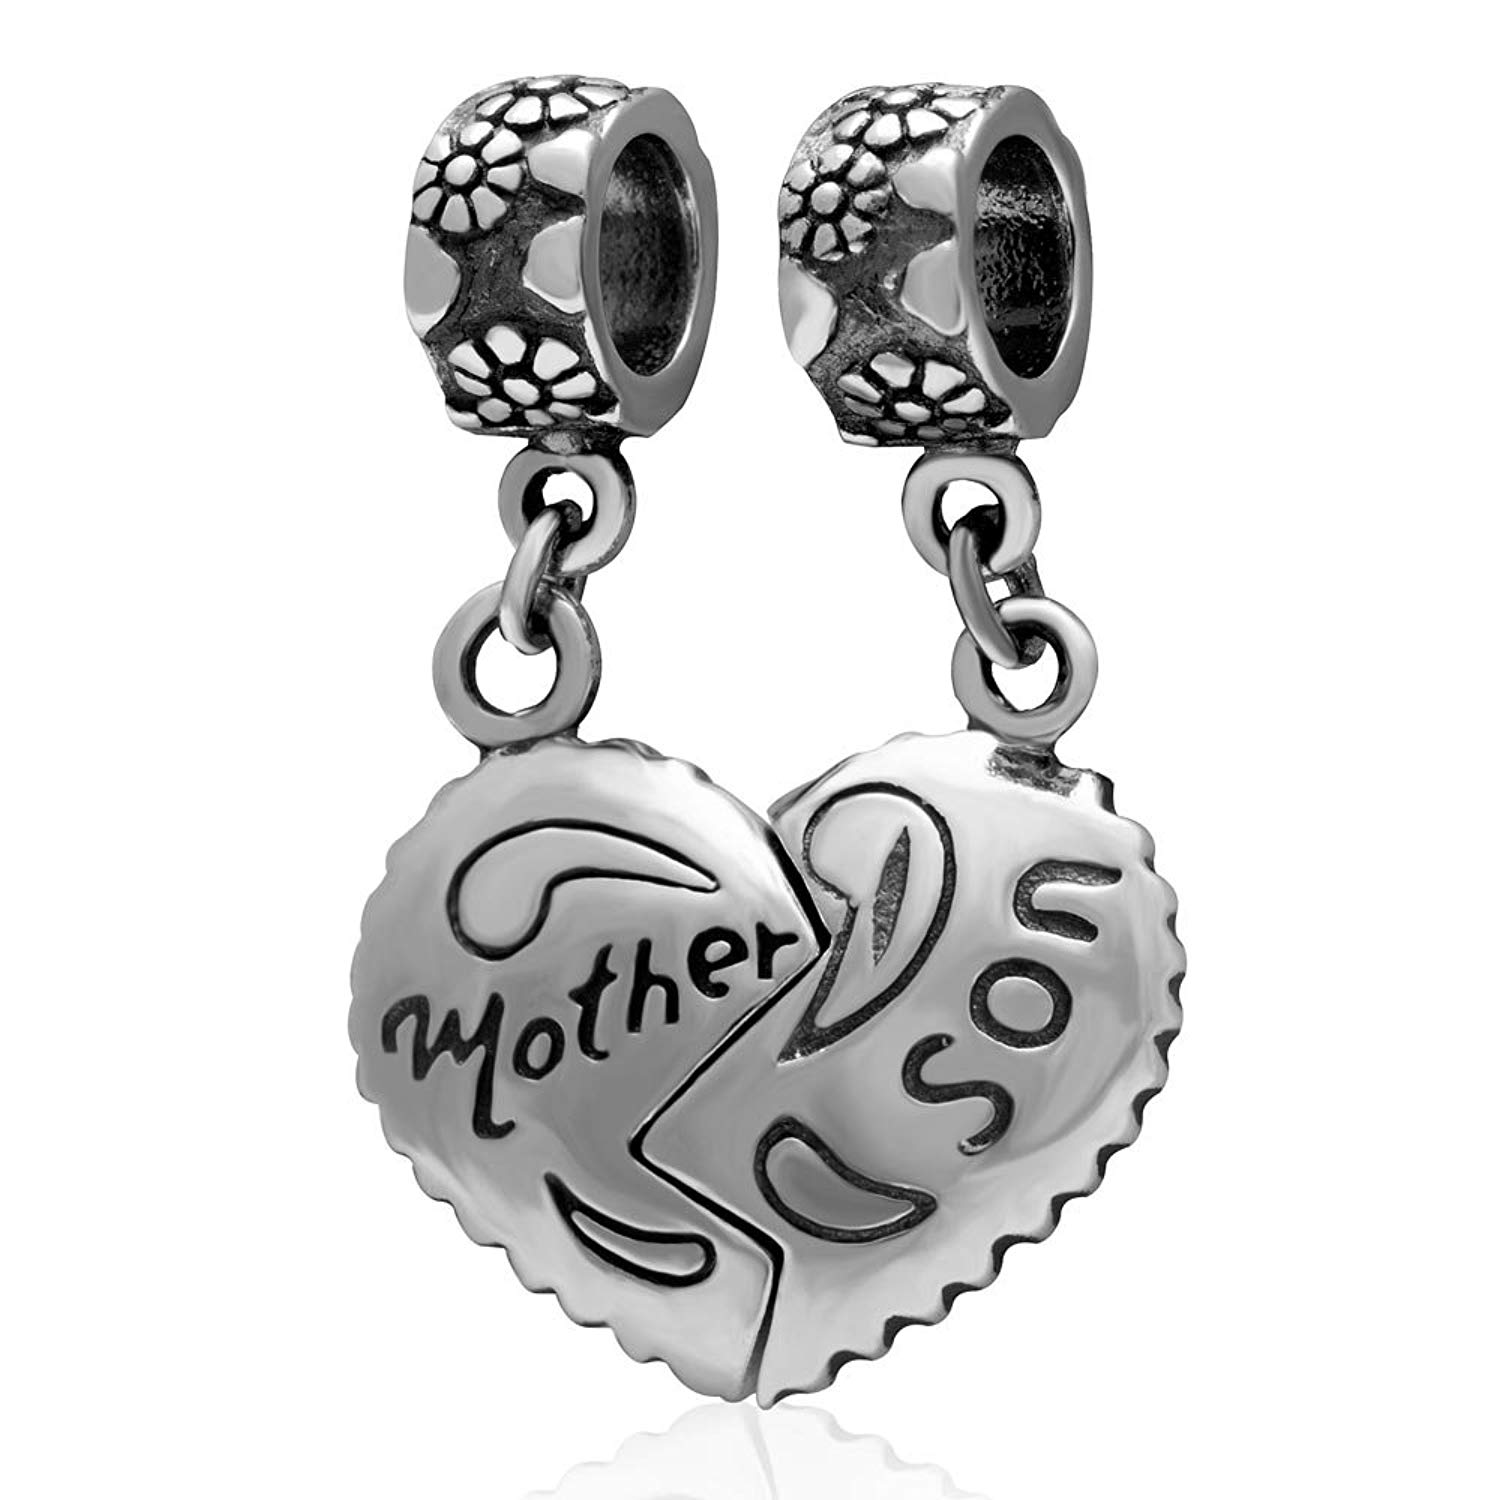 925 Sterling Silver Dangling Son Heart Charm Bead 3345 TWO PIECE Mother